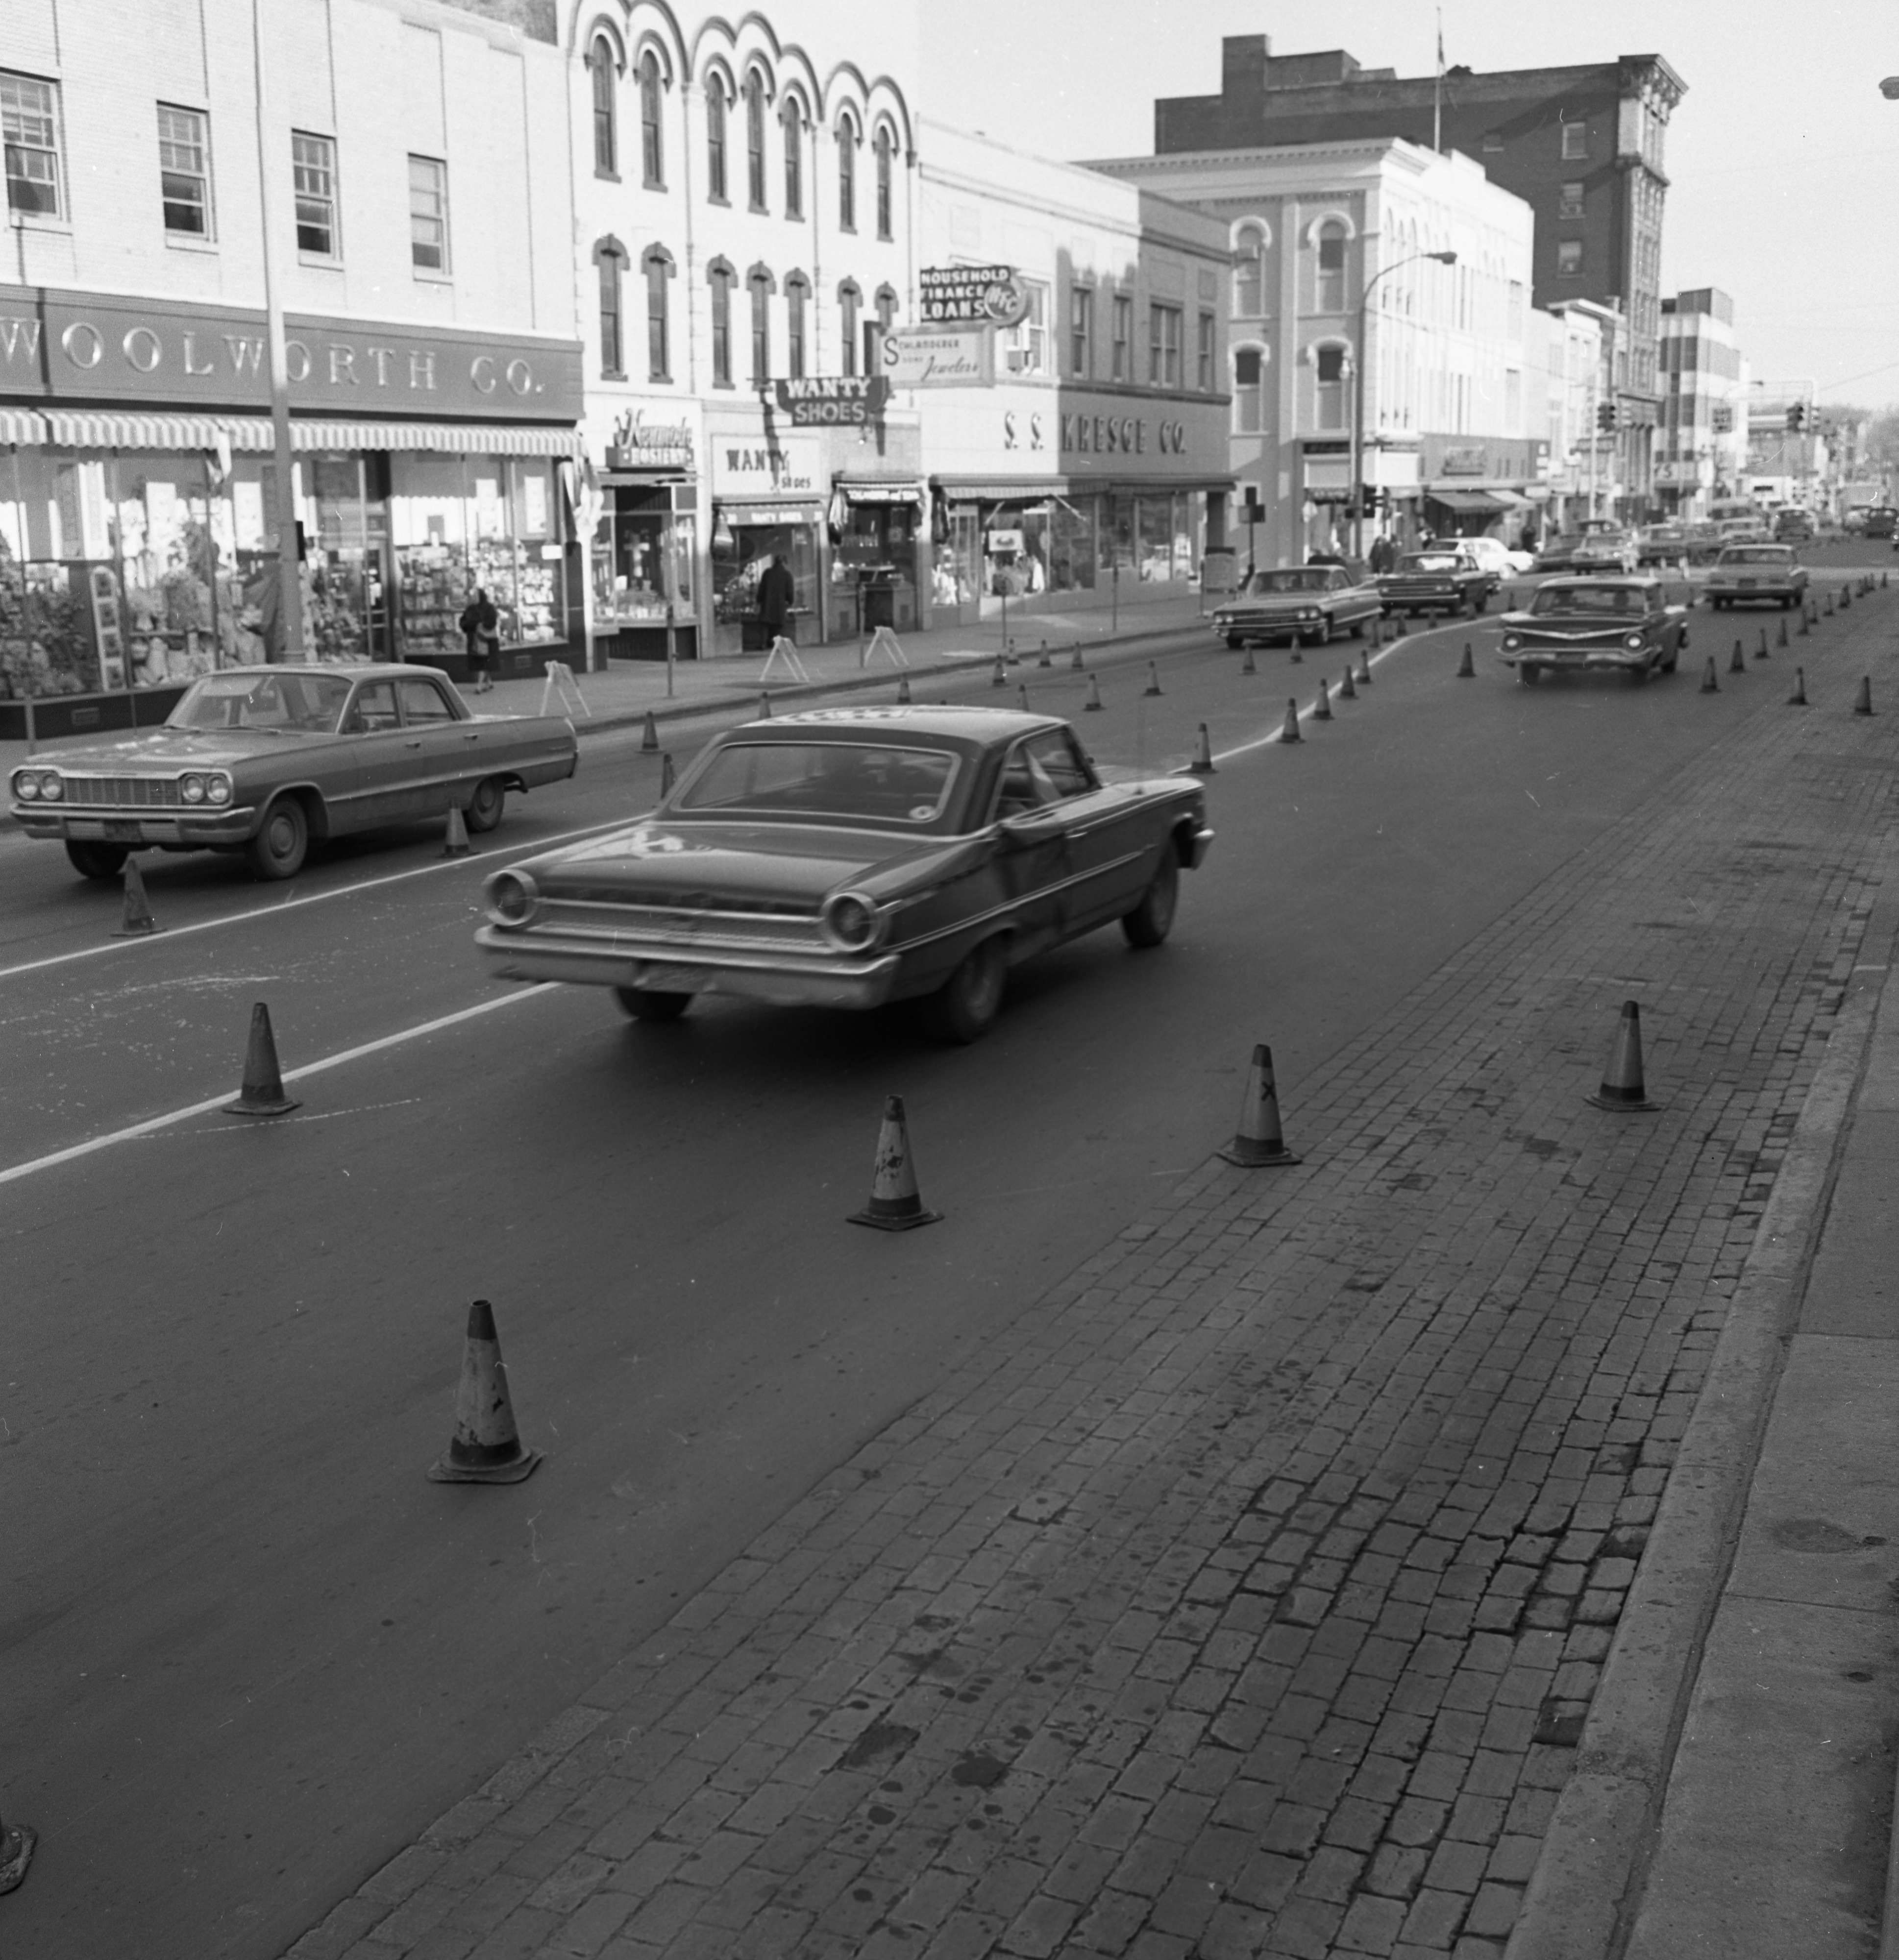 Ann Arbor Tries Out Three-Lane Traffic On S. Main, April 1965 image